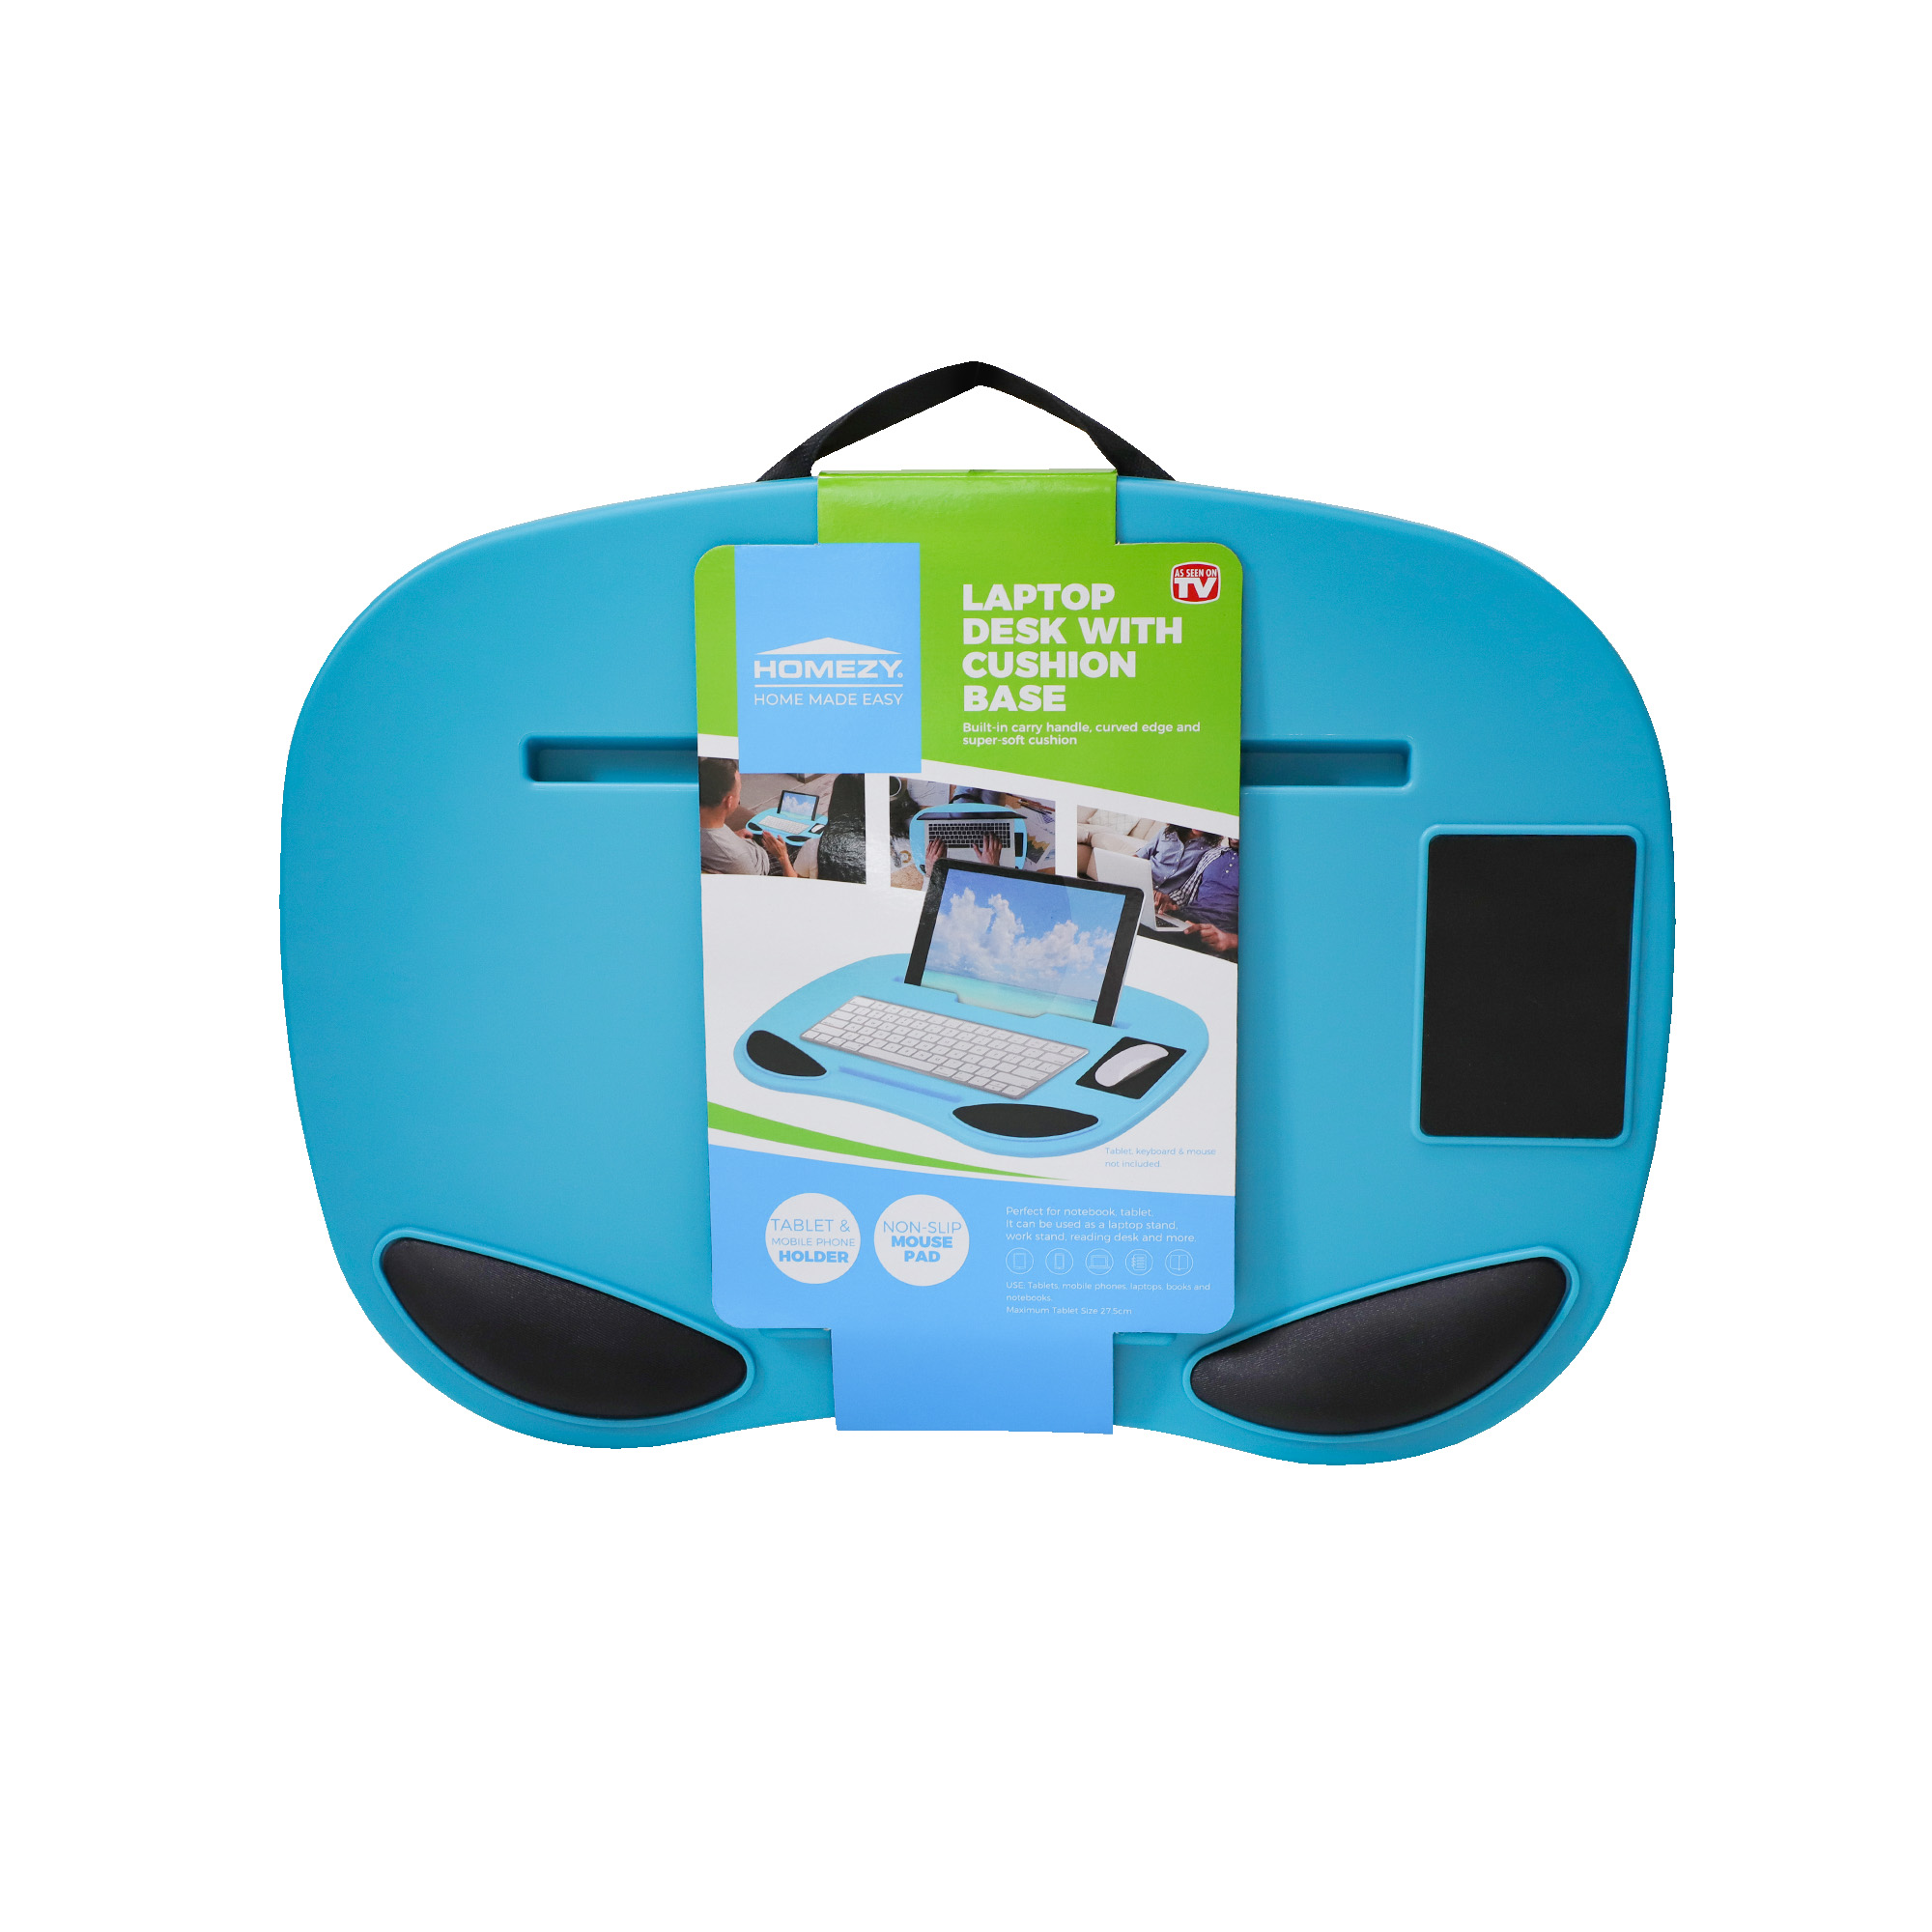 as seen on tv laptop desk with cushion base assorted